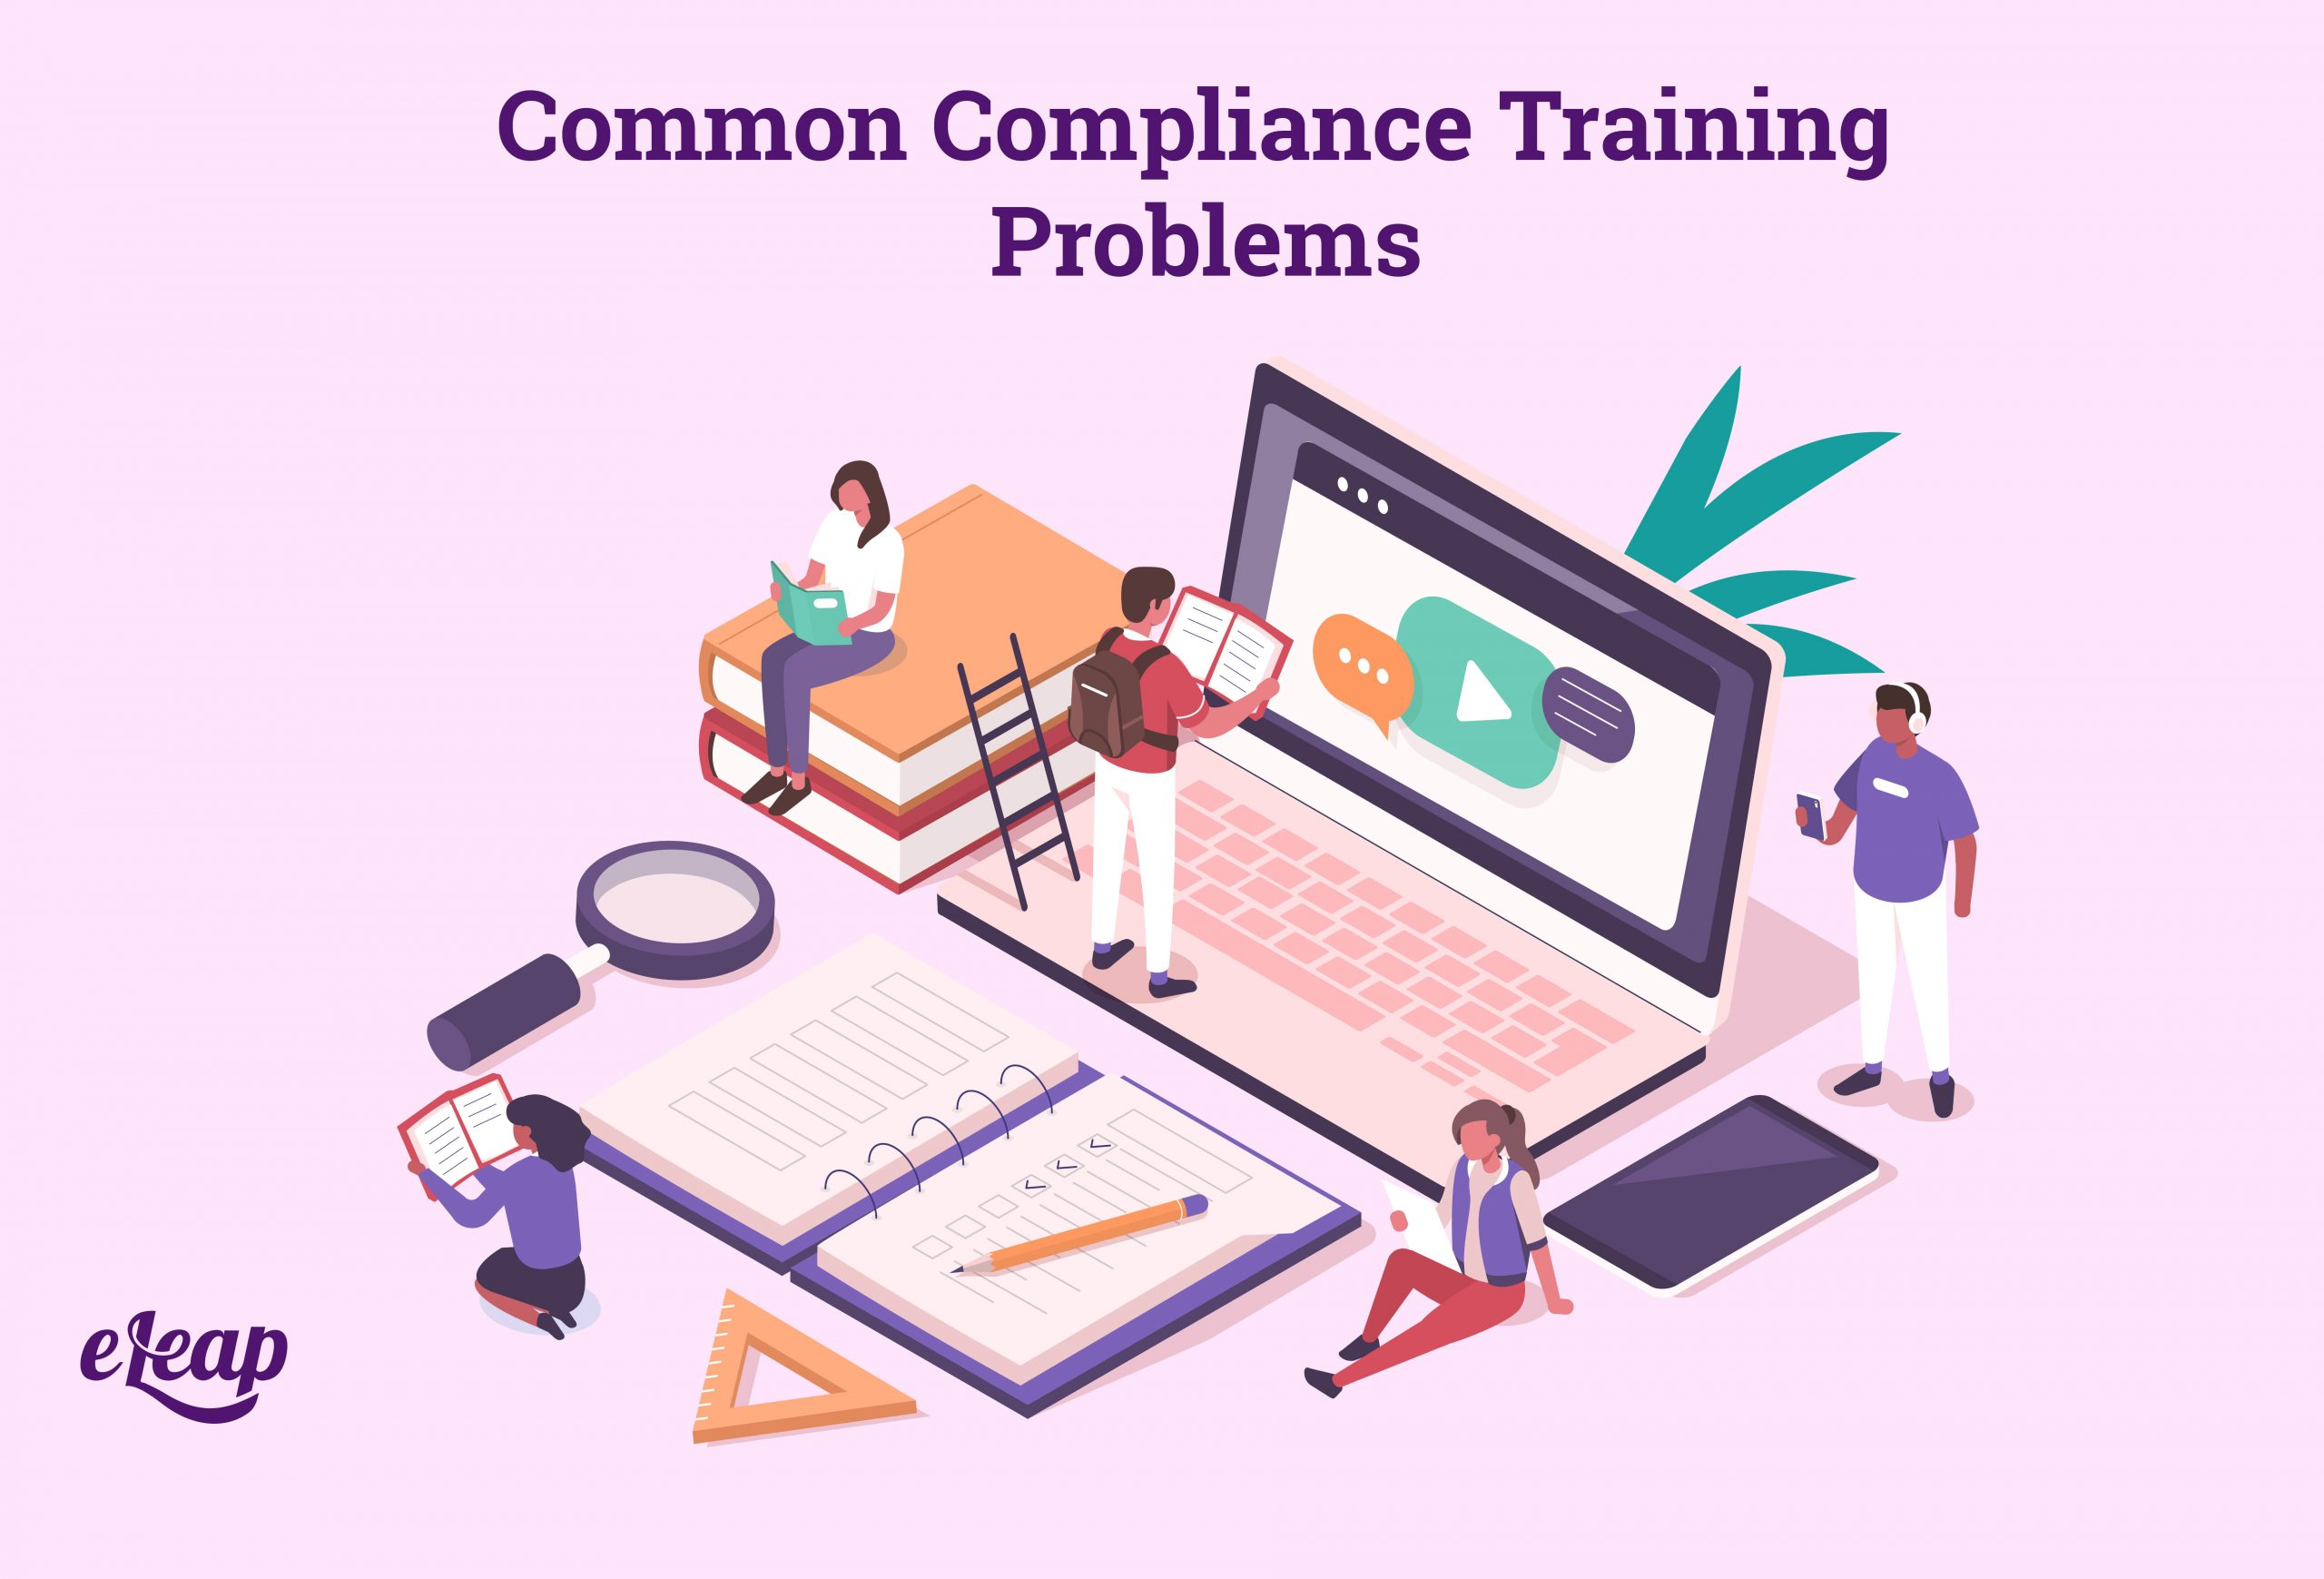 Common Compliance Training Problems